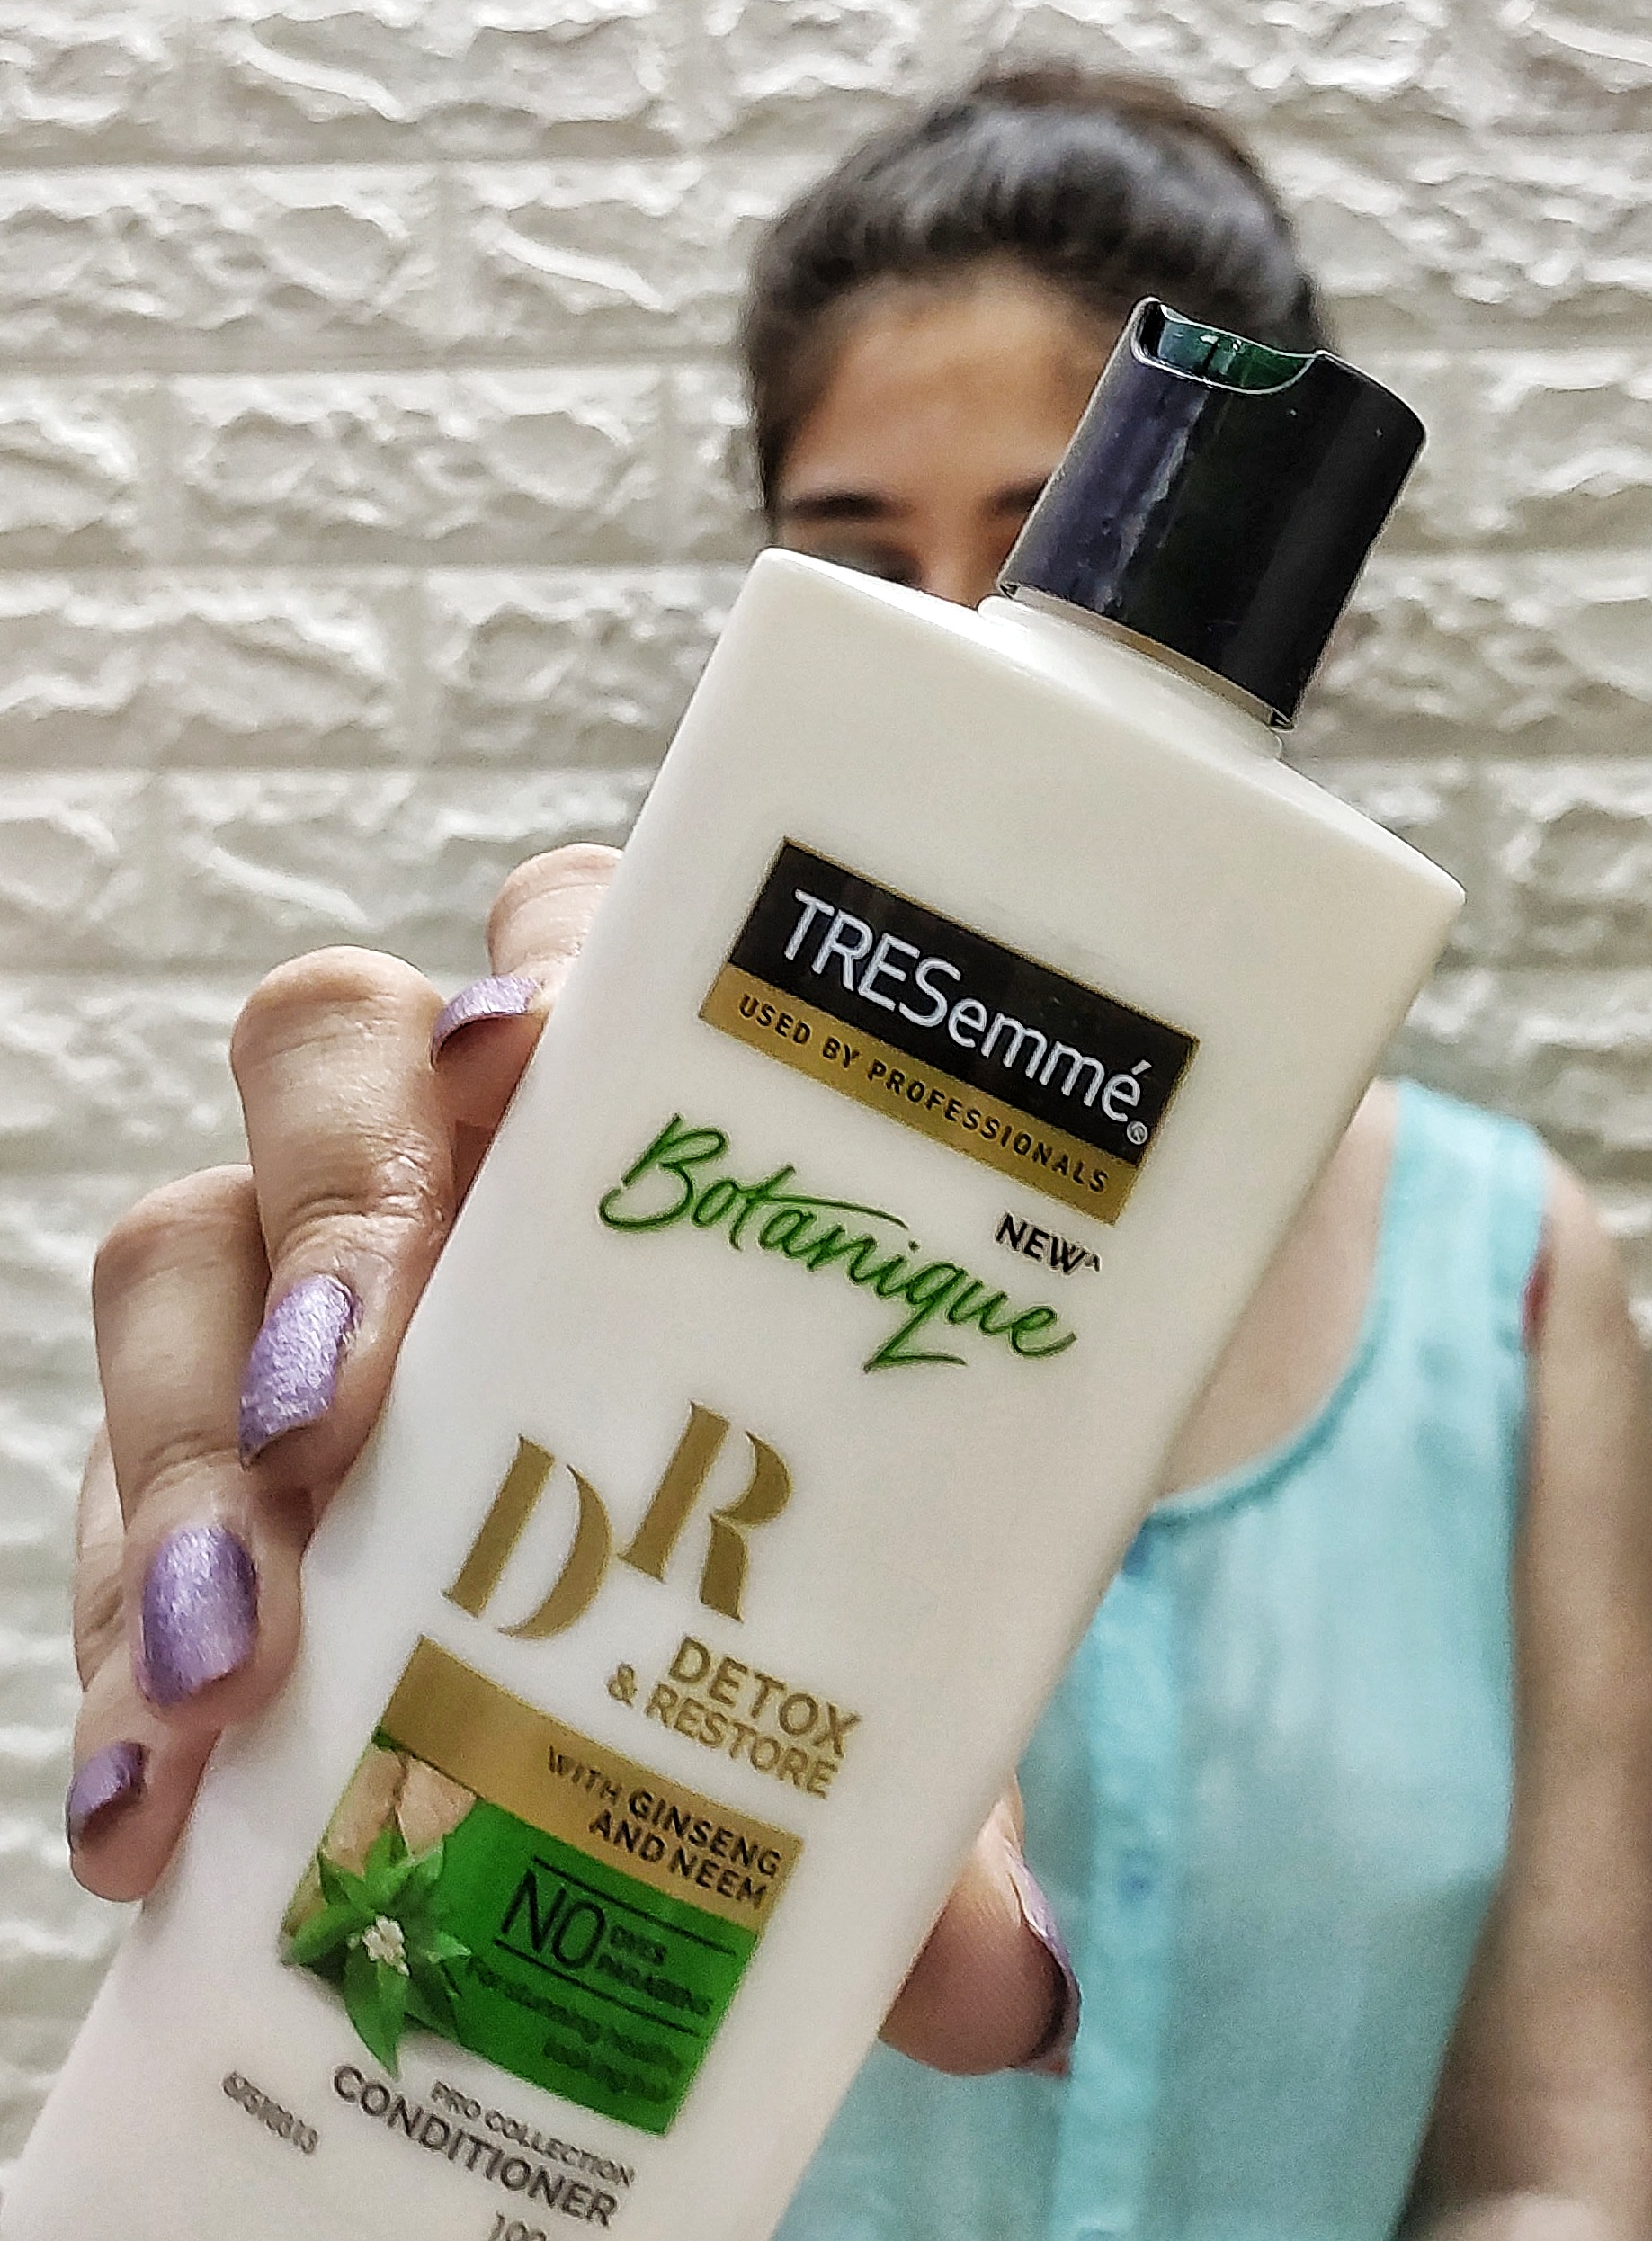 Tresemme Botanique Detox and Restore Conditioner -Best conditioner-By thekaurblog